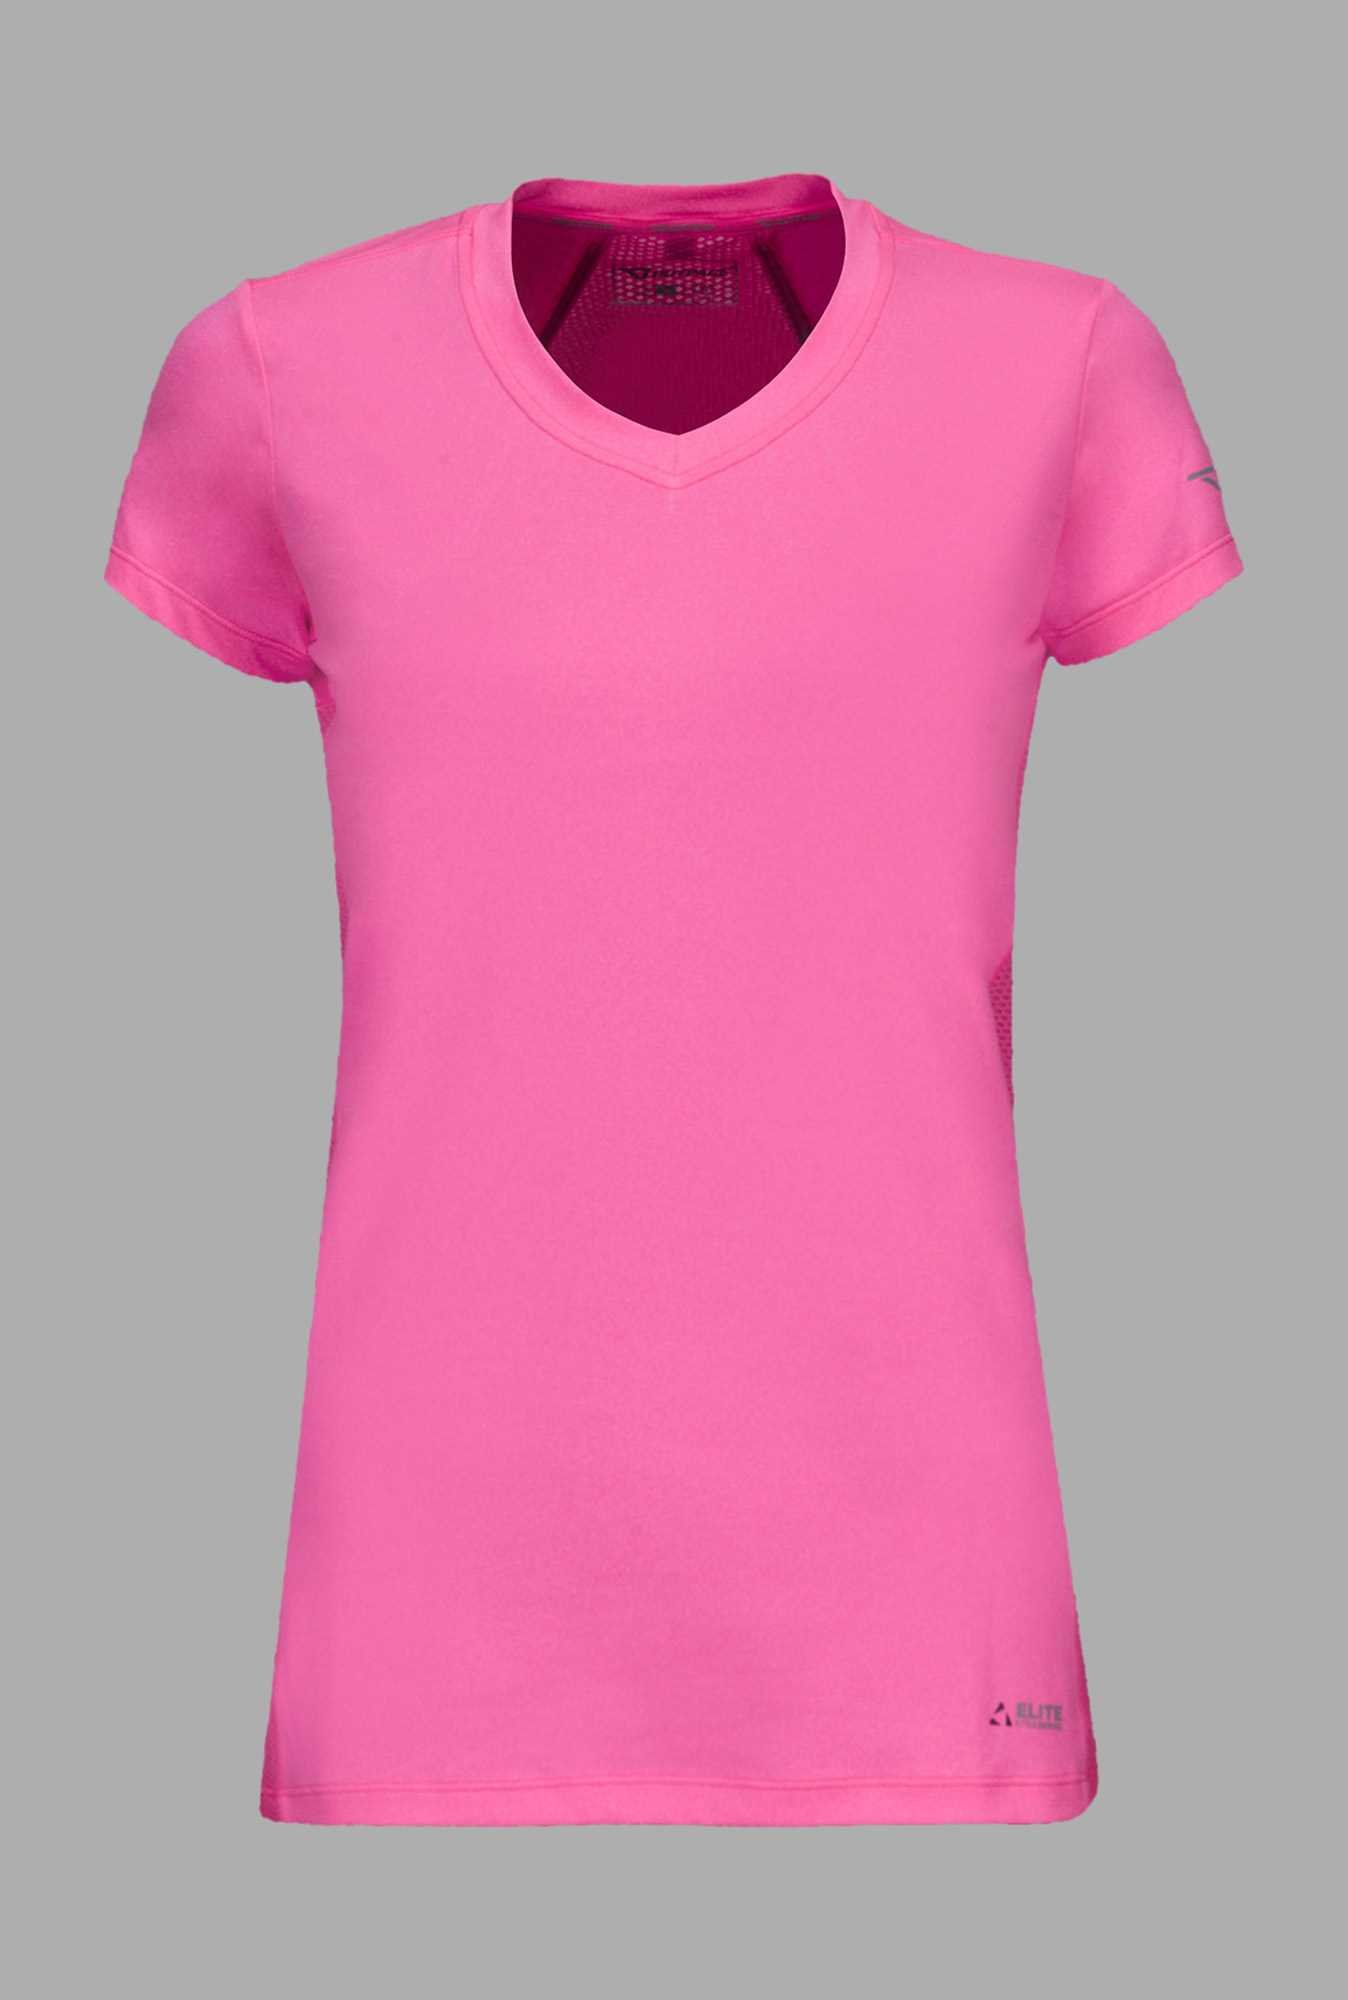 Outpace Pink V Neck Running T Shirt